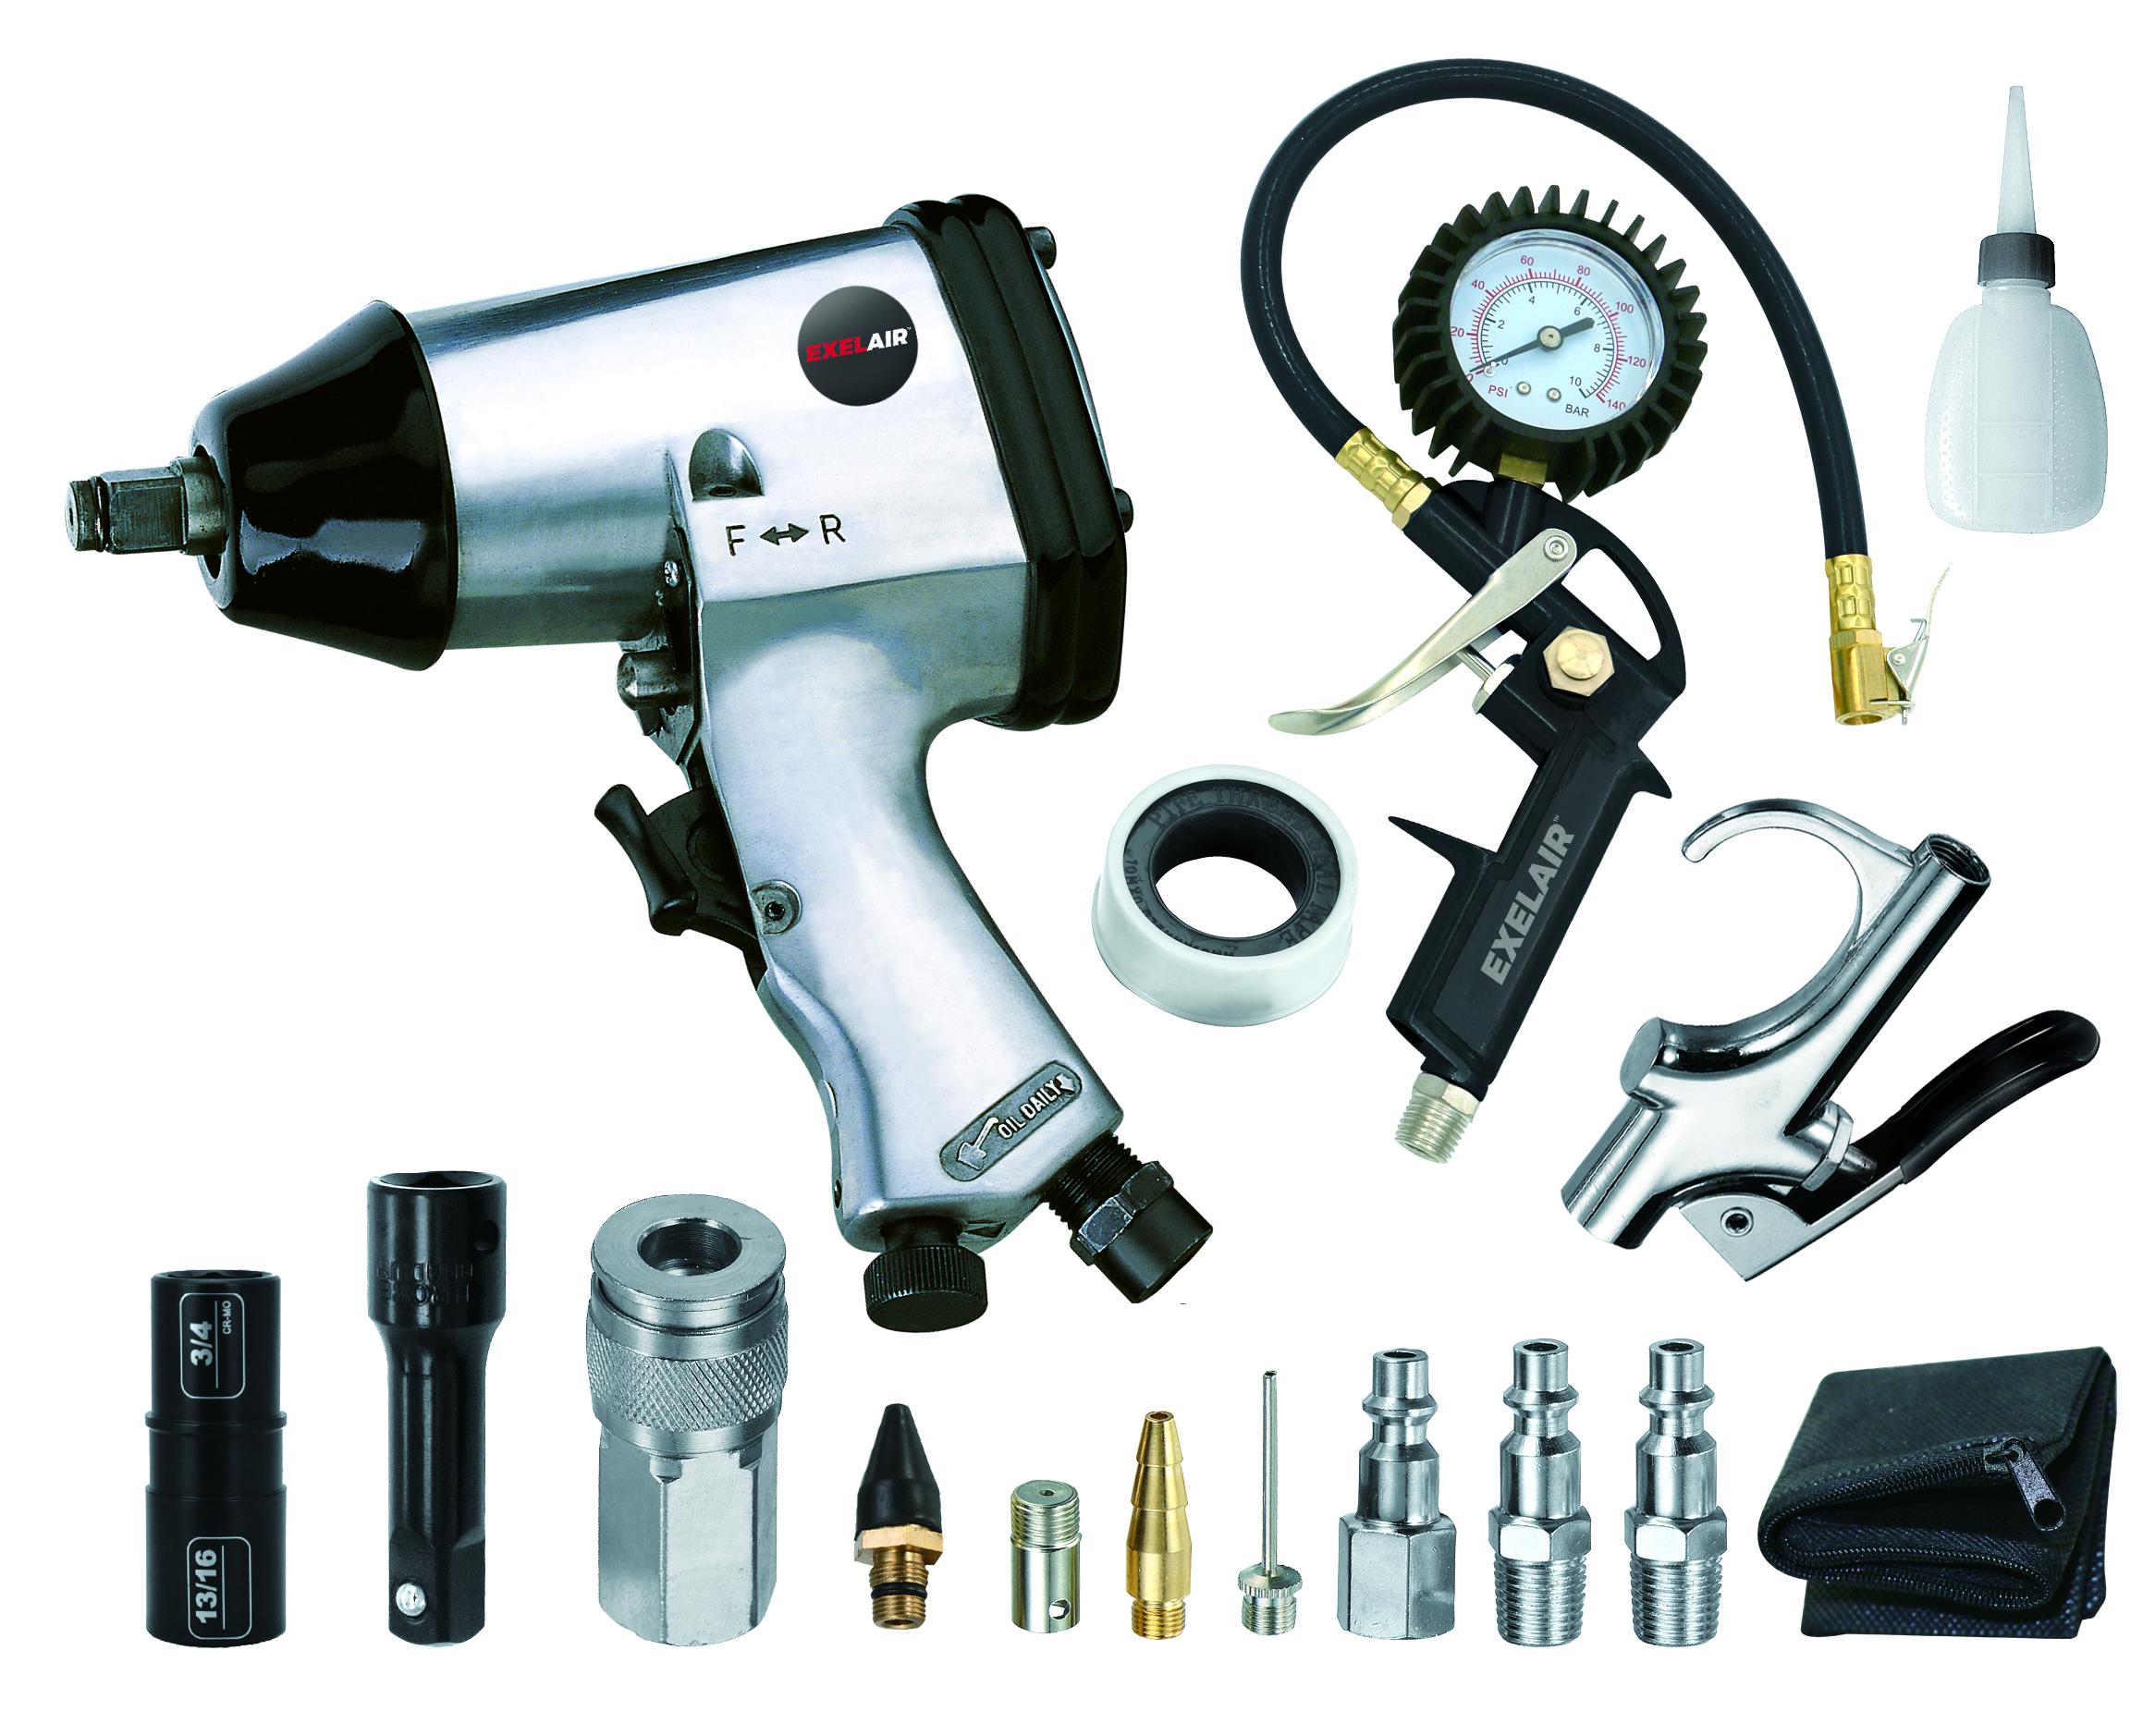 Exelair 16 Piece Professional Air Tool Accessory And Home Auto Tire Maintenance Kit Impact Wrench Inflator Gauge Gun W Clip On Chuck